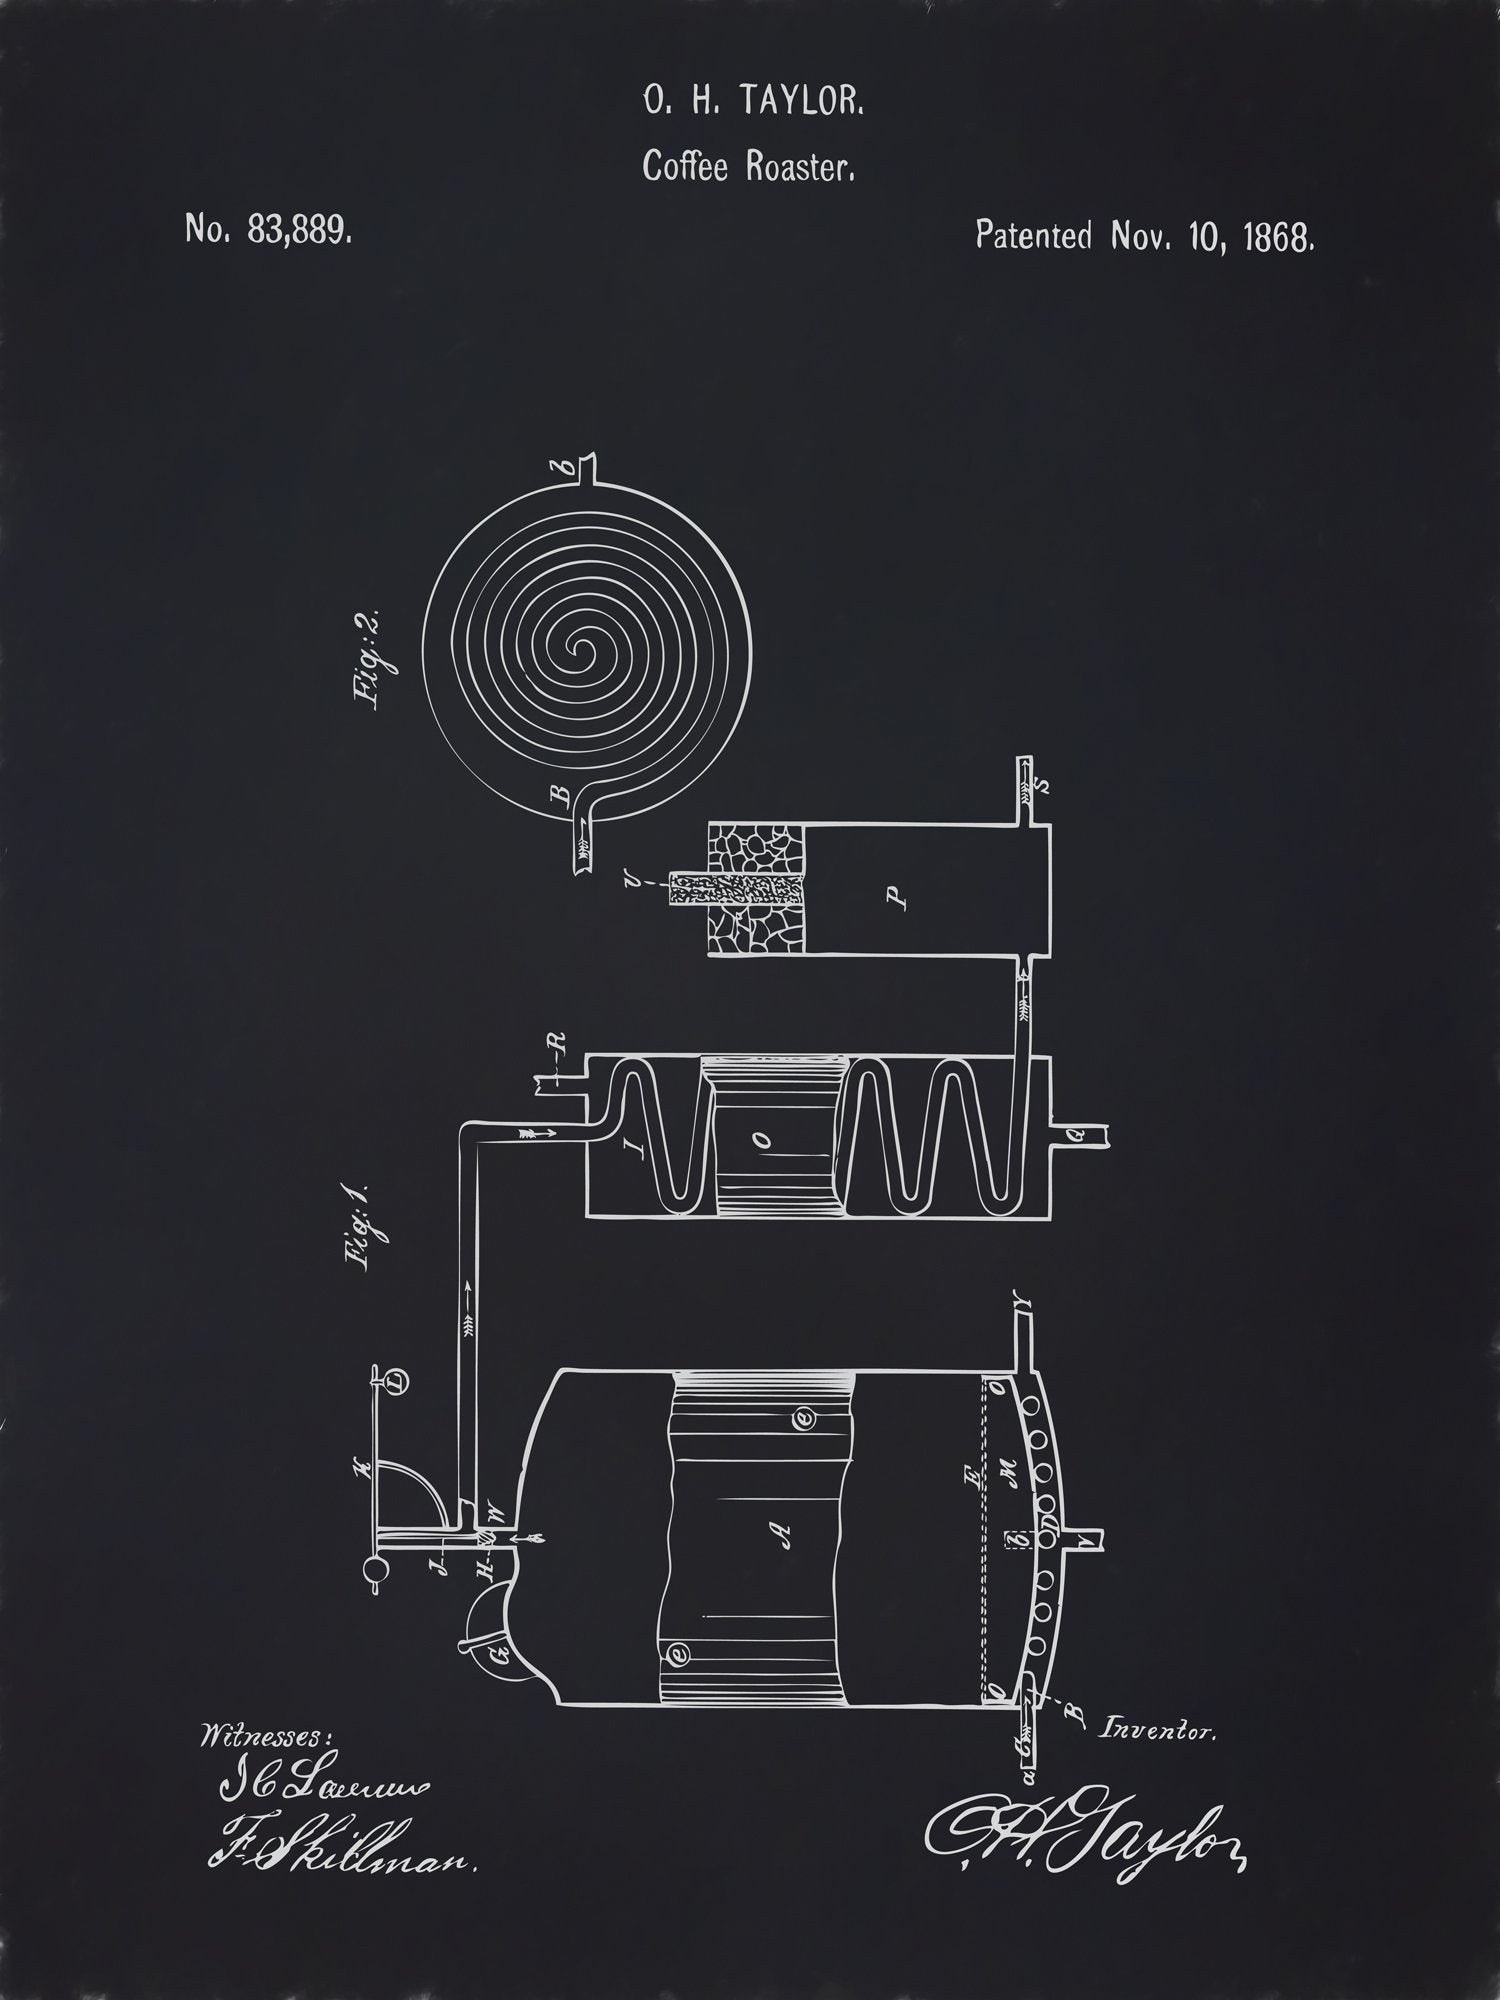 U.S. Patent No. 83889-1 Coffee Roaster Reworked, Series 2